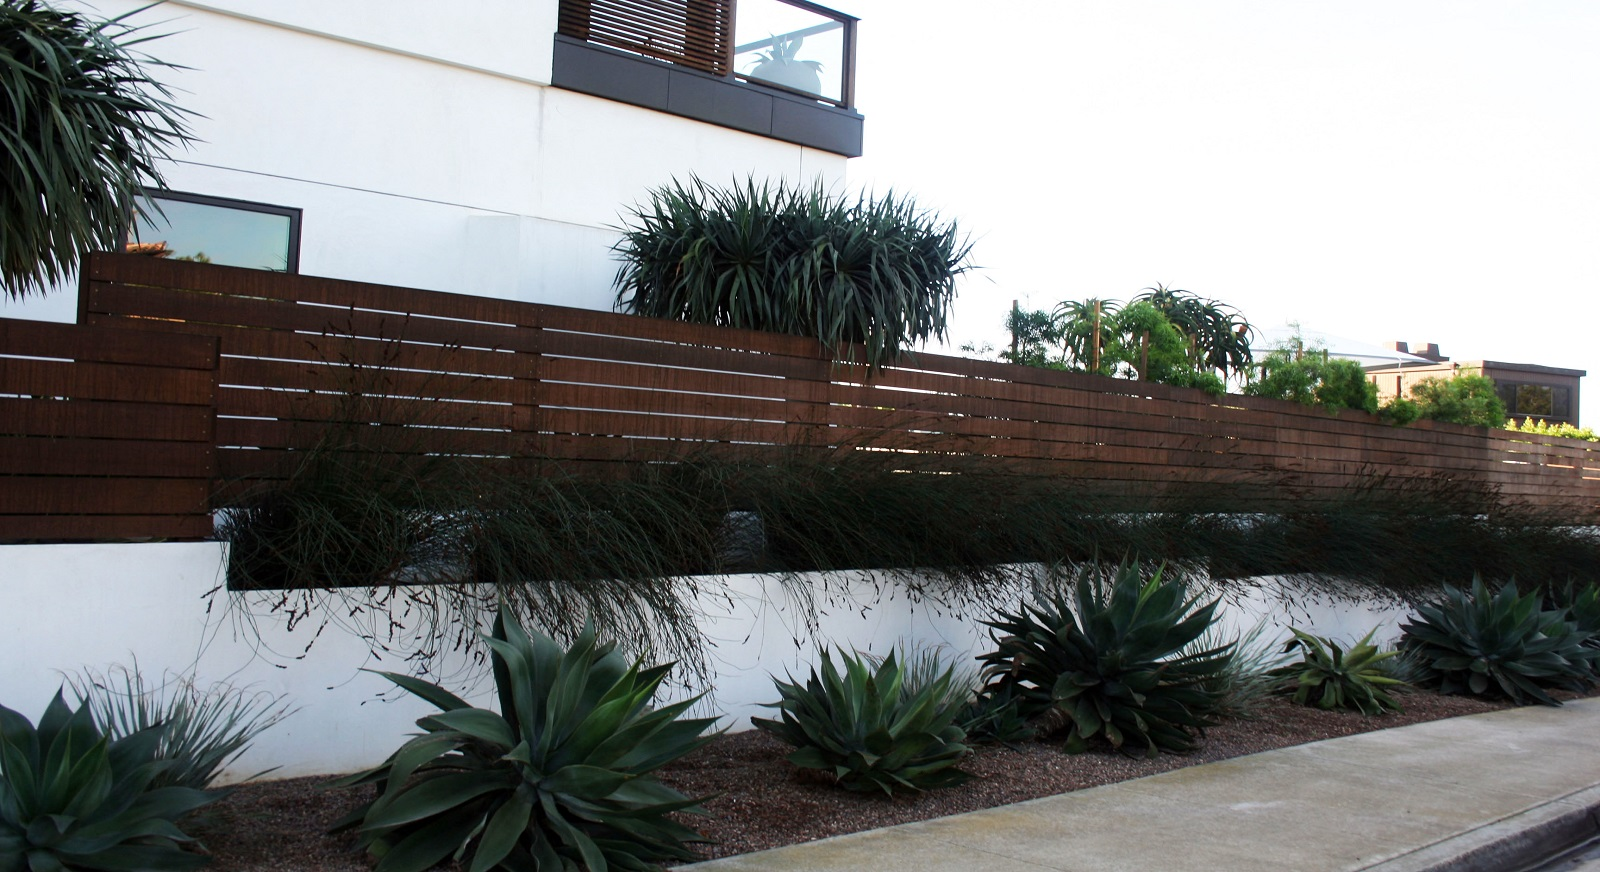 cross construction remodel landscape retaining wall stucco fence